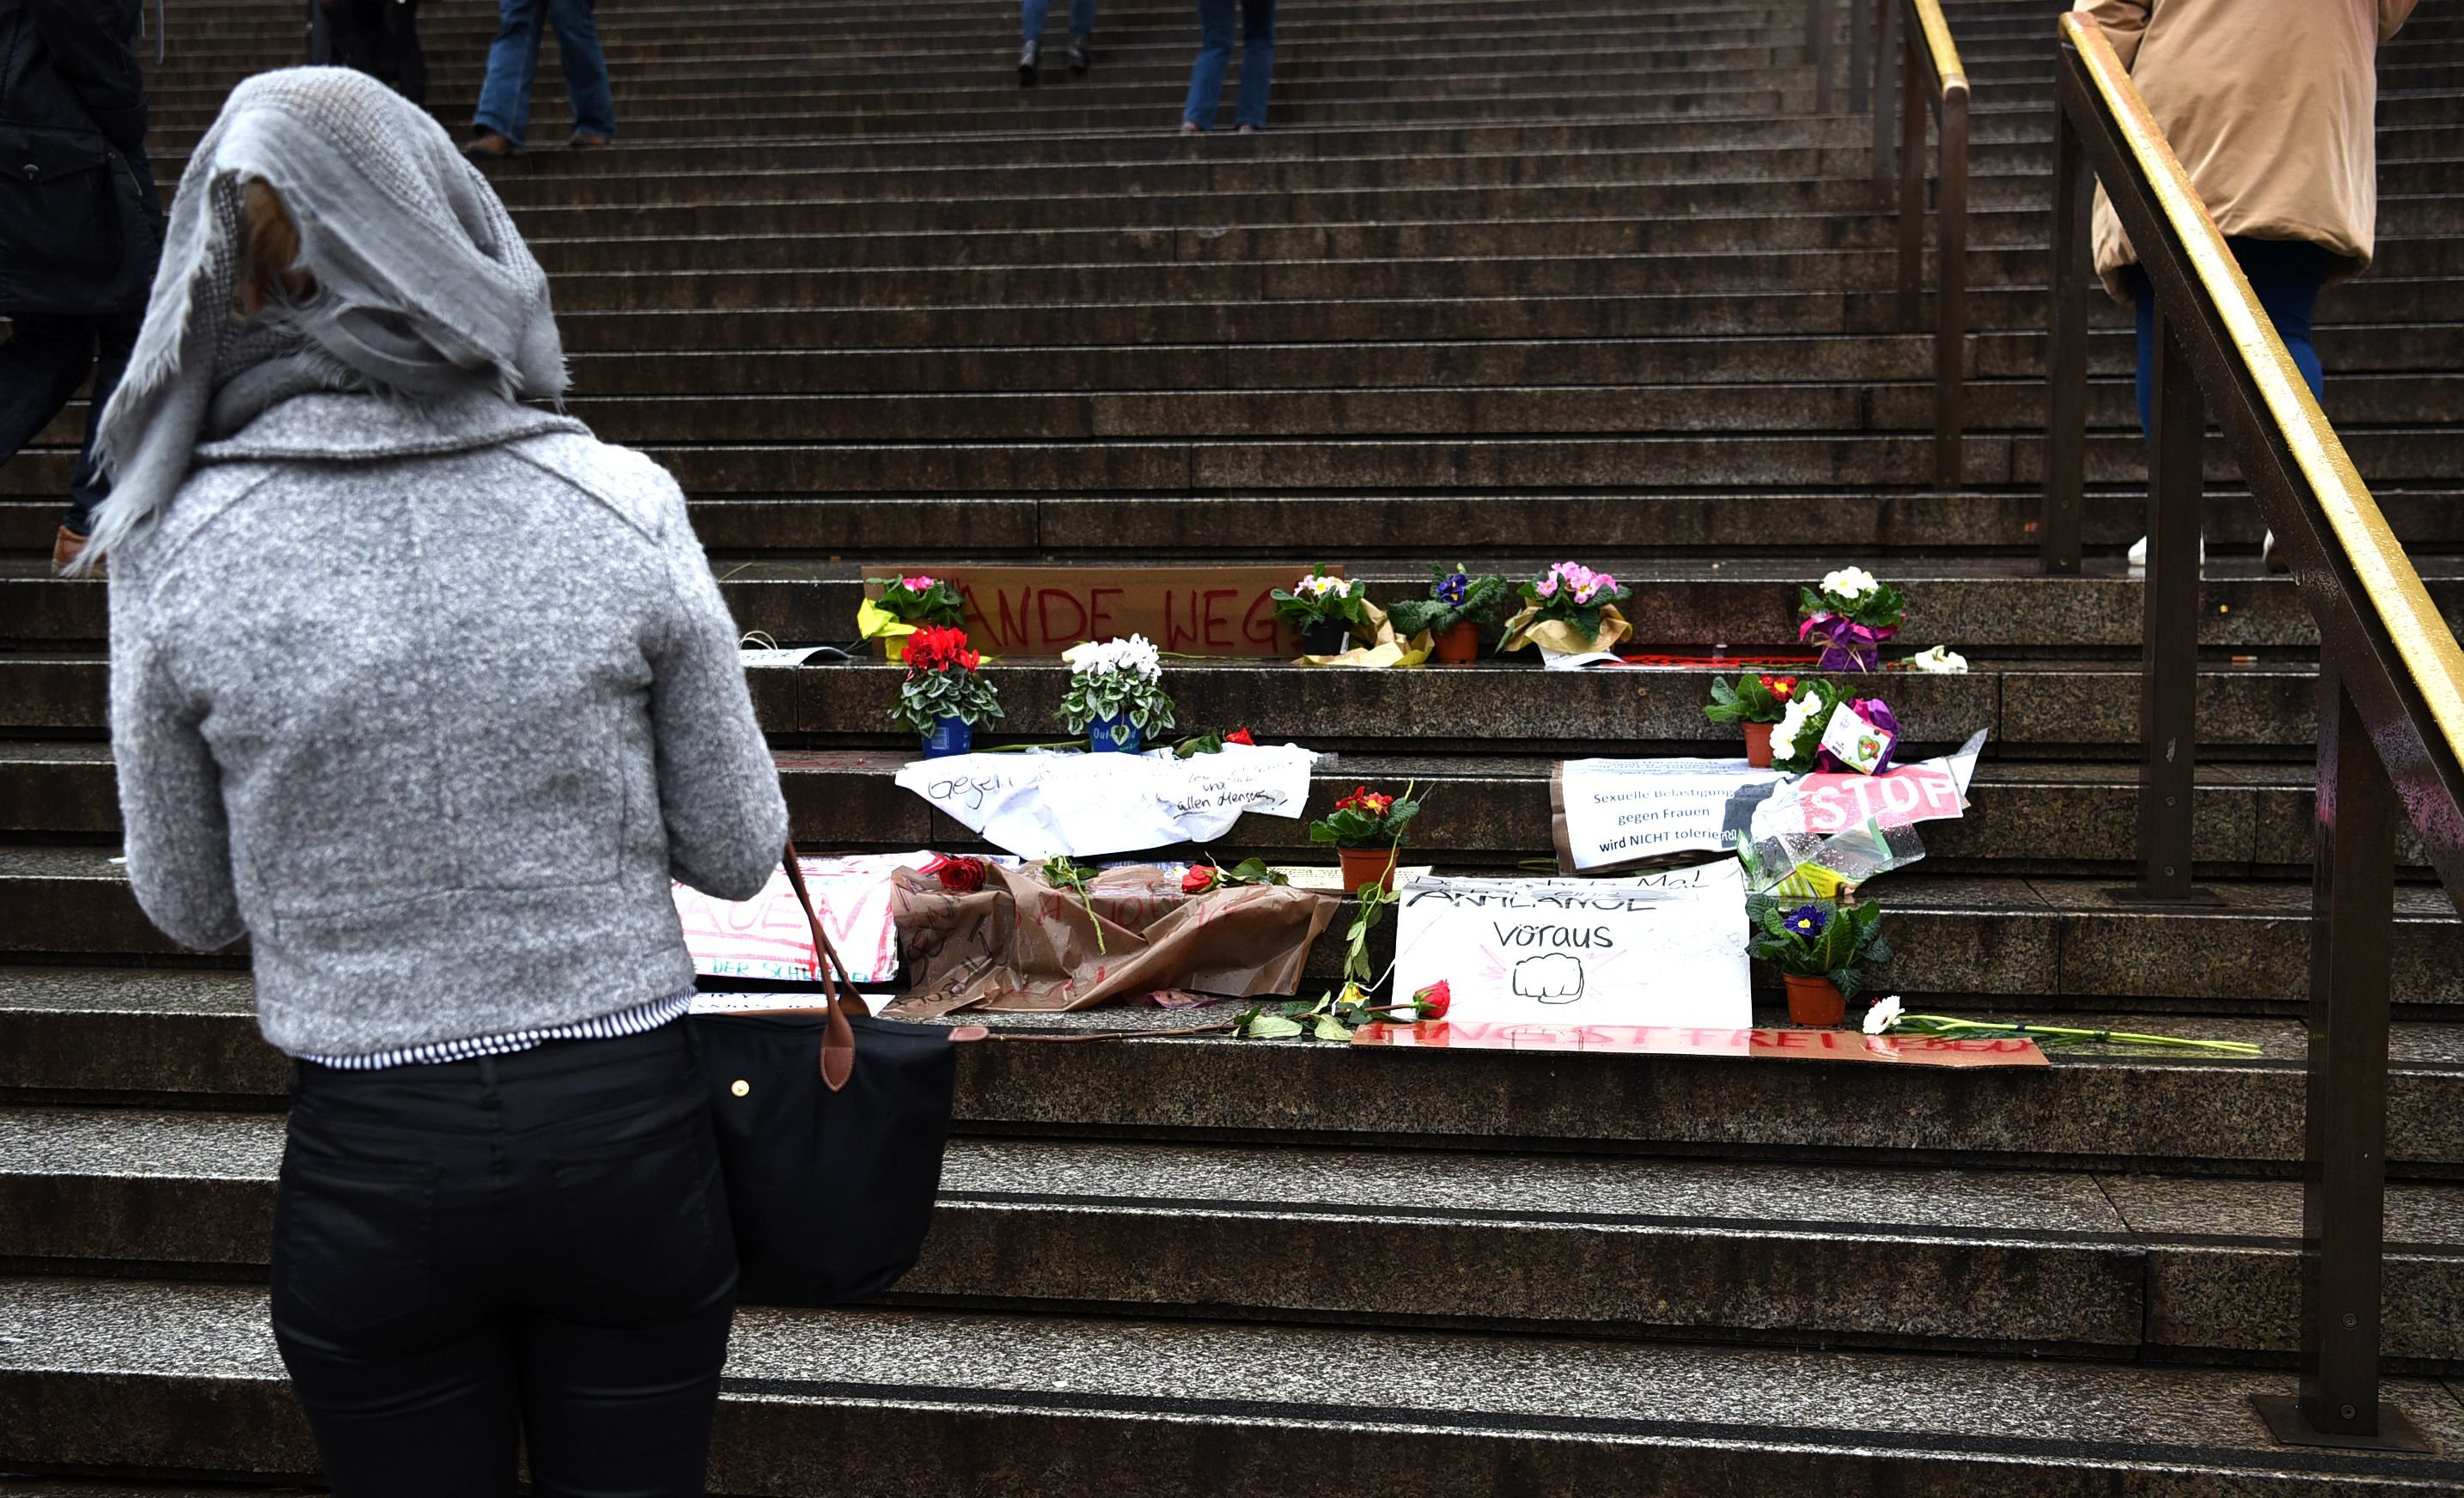 A woman looks at flowers and letters of protest that are laid down on the steps in front of the Cologne main train station in Cologne, western Germany on Jan. 11, 2016.